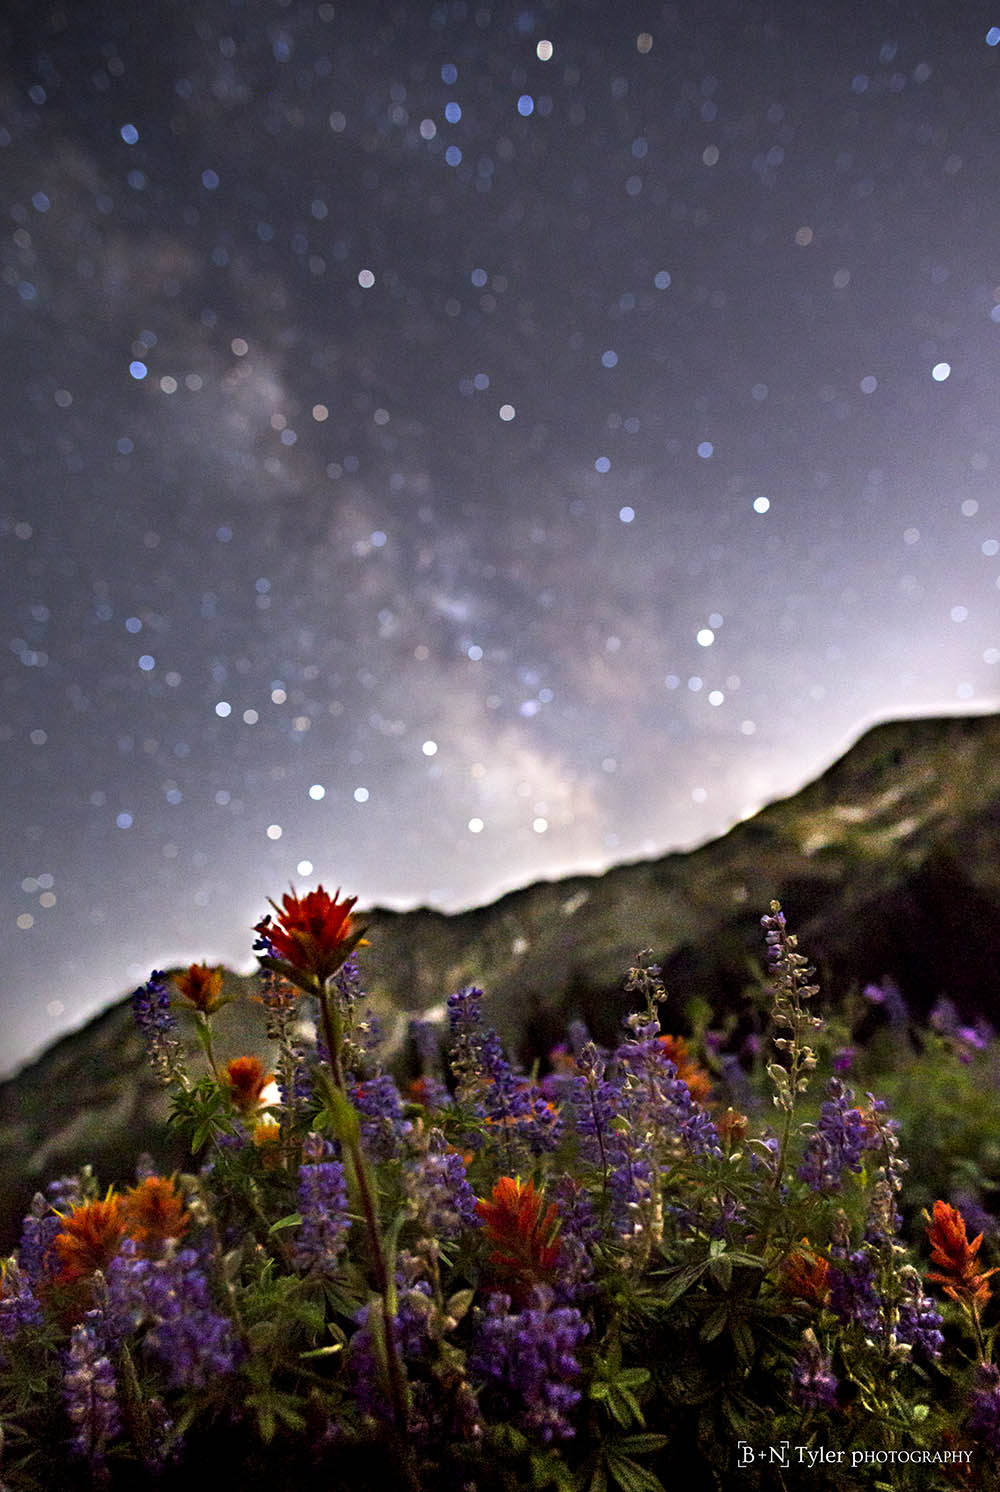 Wildflowers and milky way